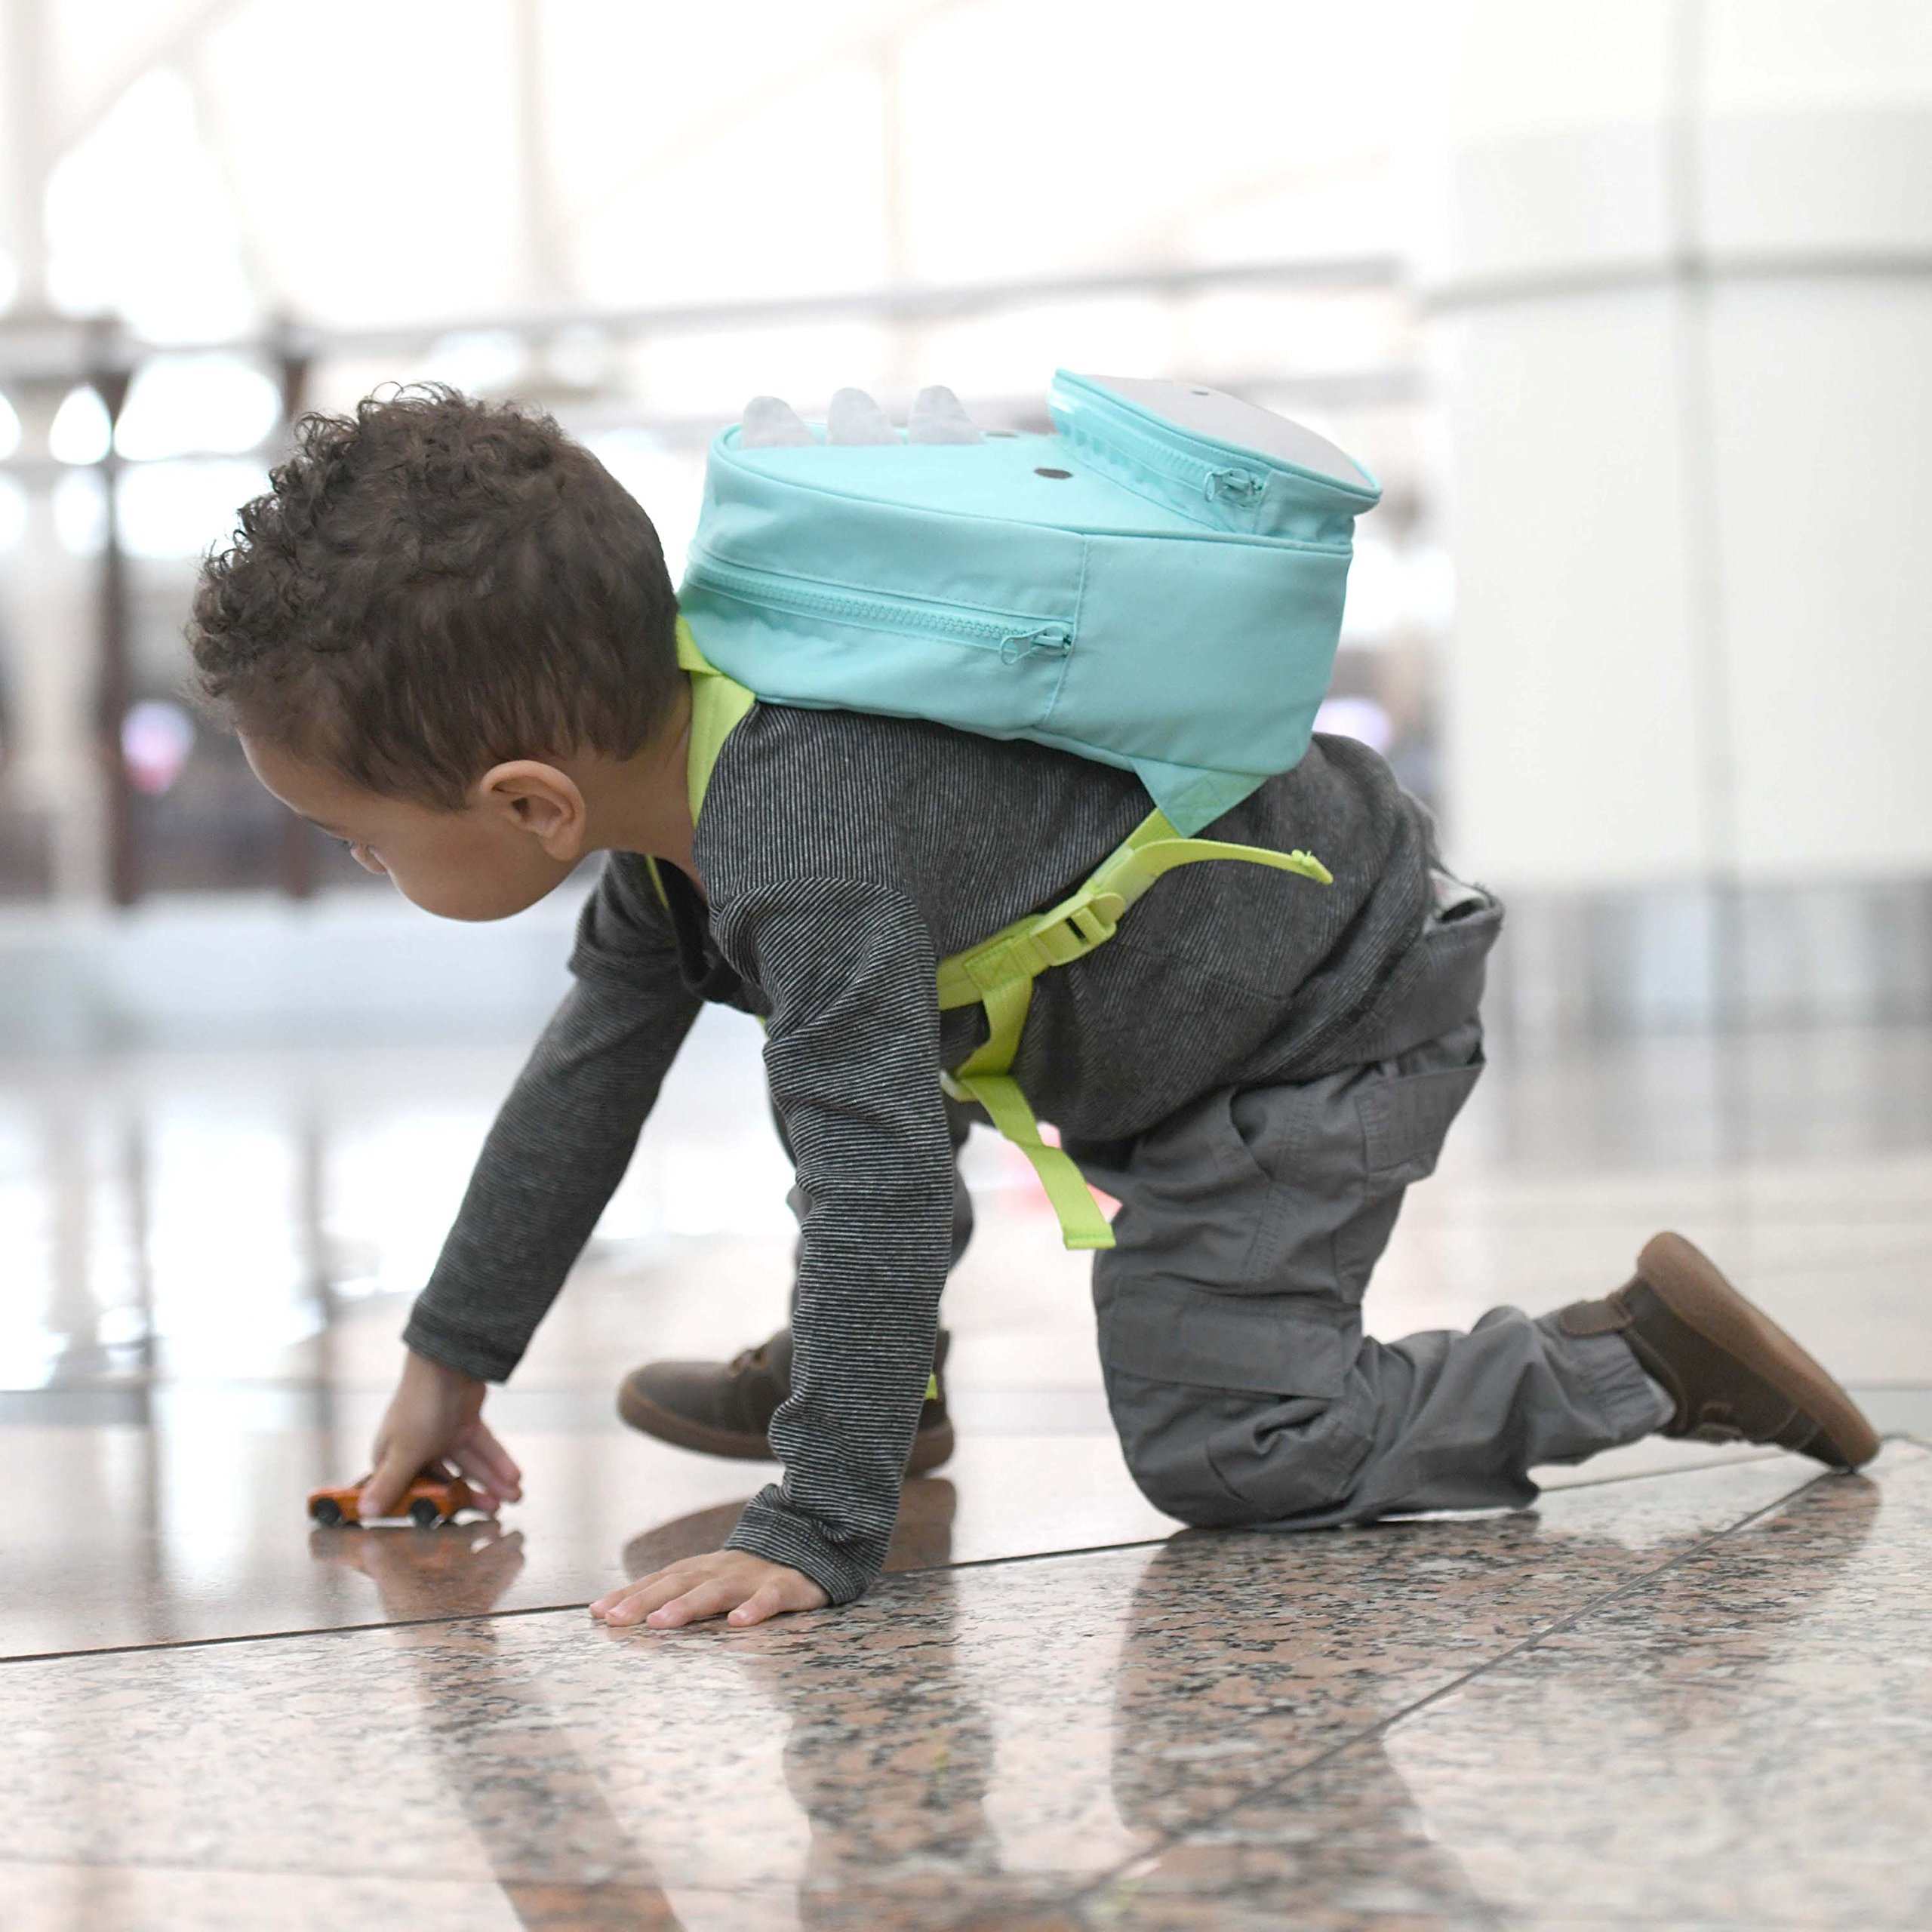 Travel Bug Toddler Safety Dinosaur Backpack Harness with Removable Tether, Teal/Grey by Travel Bug (Image #6)